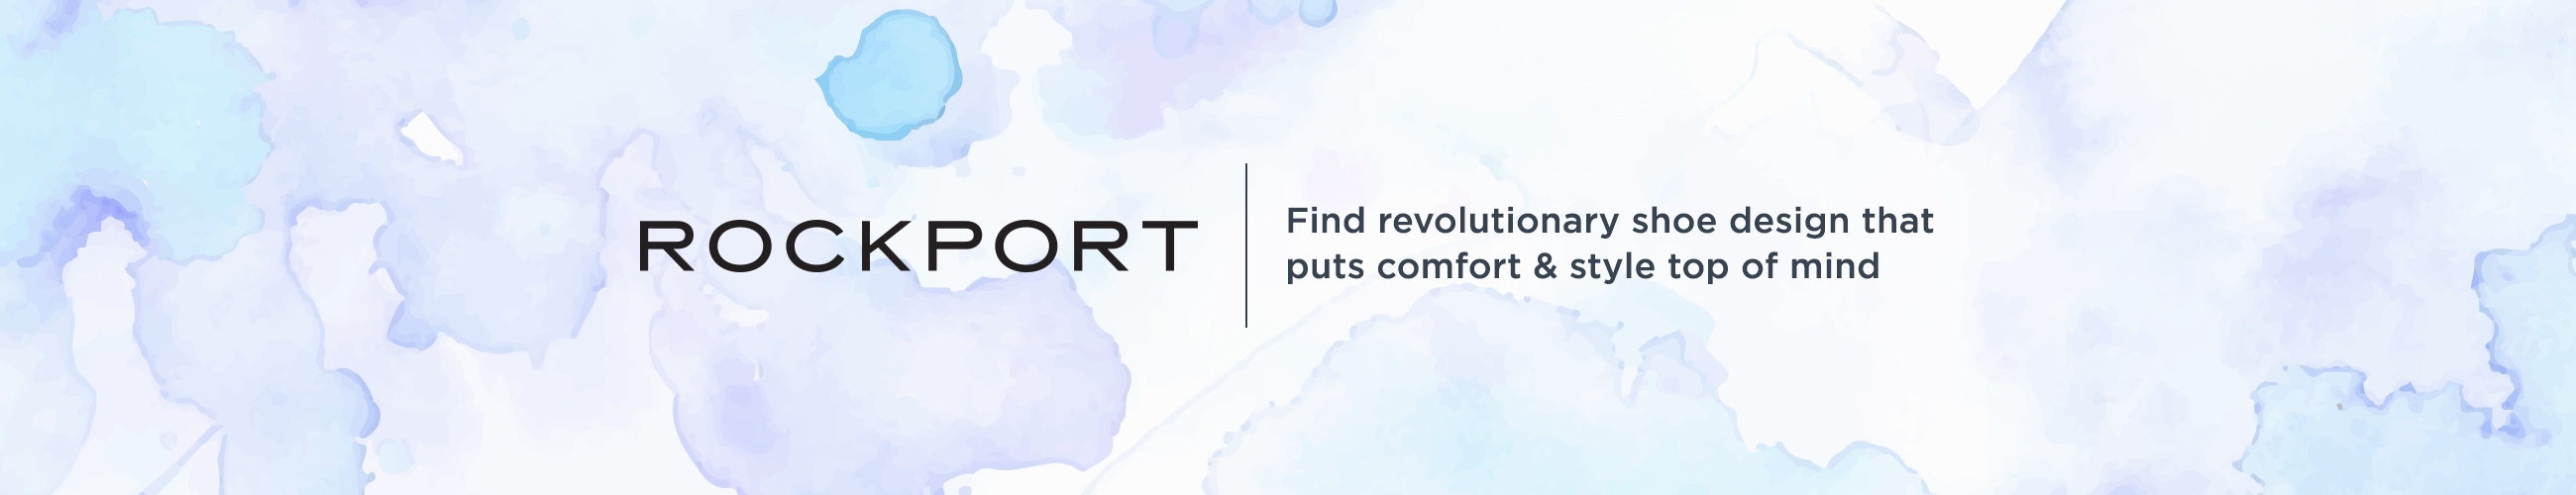 Rockport, Find revolutionary shoe design that puts comfort & style top of mind